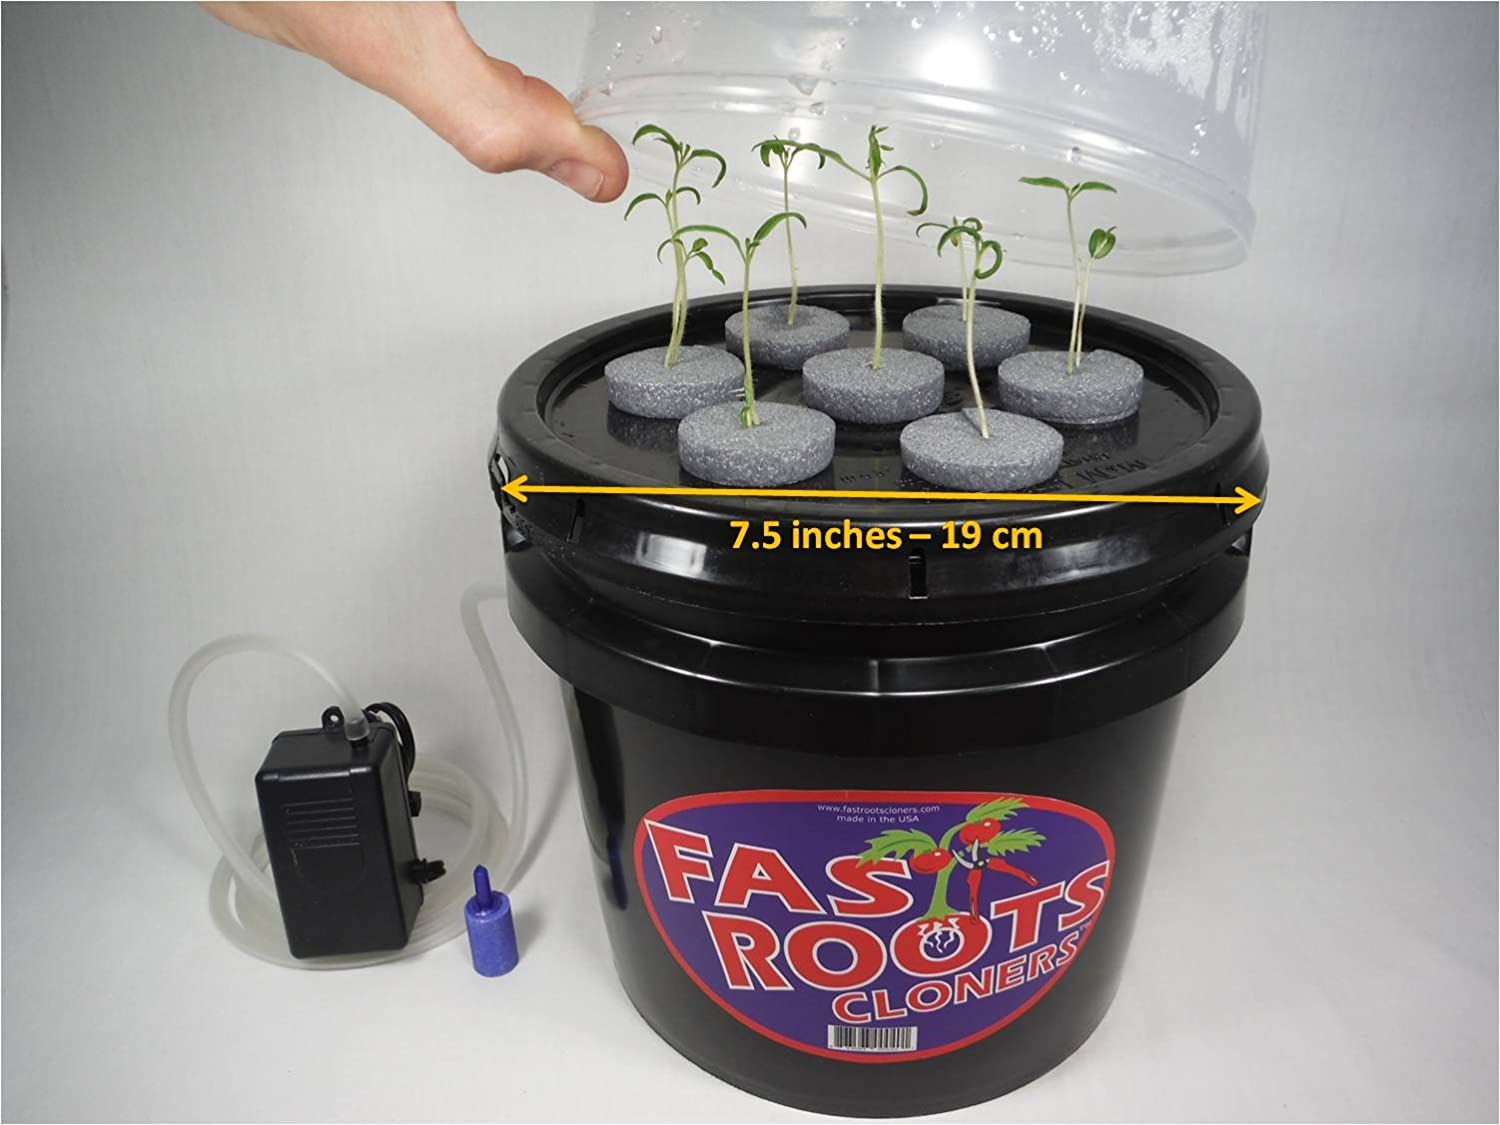 Indoor 7 Site Plant Cloning Machine Easy Root Growing Hydroponics Aeroponics BNJ DESIGN mini plant cloner